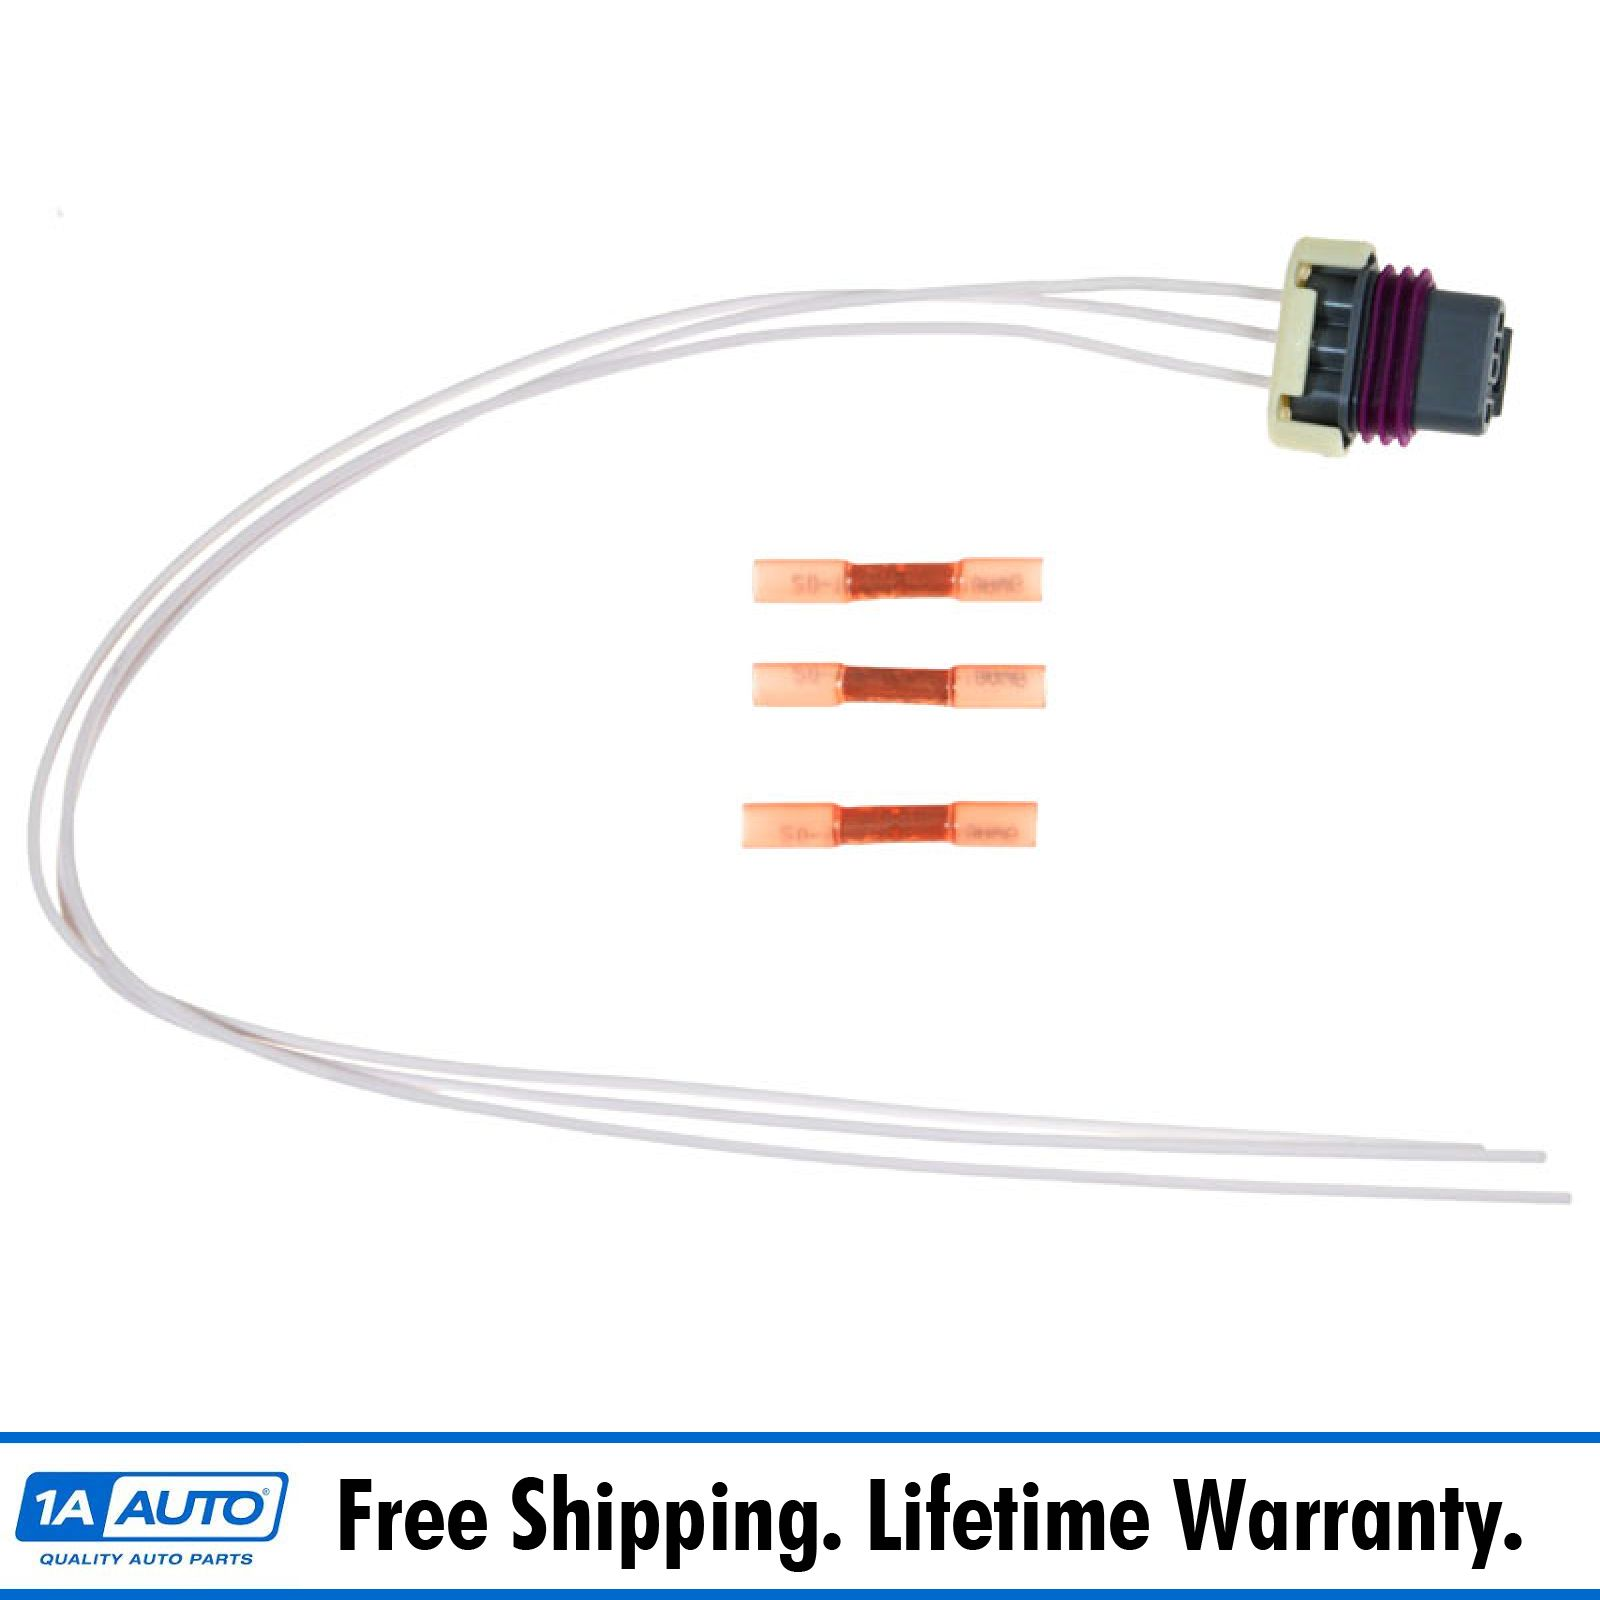 MAP Manifold Pressure Sensor Pigtail Harness Wiring Connector for Chevy GMC  GM